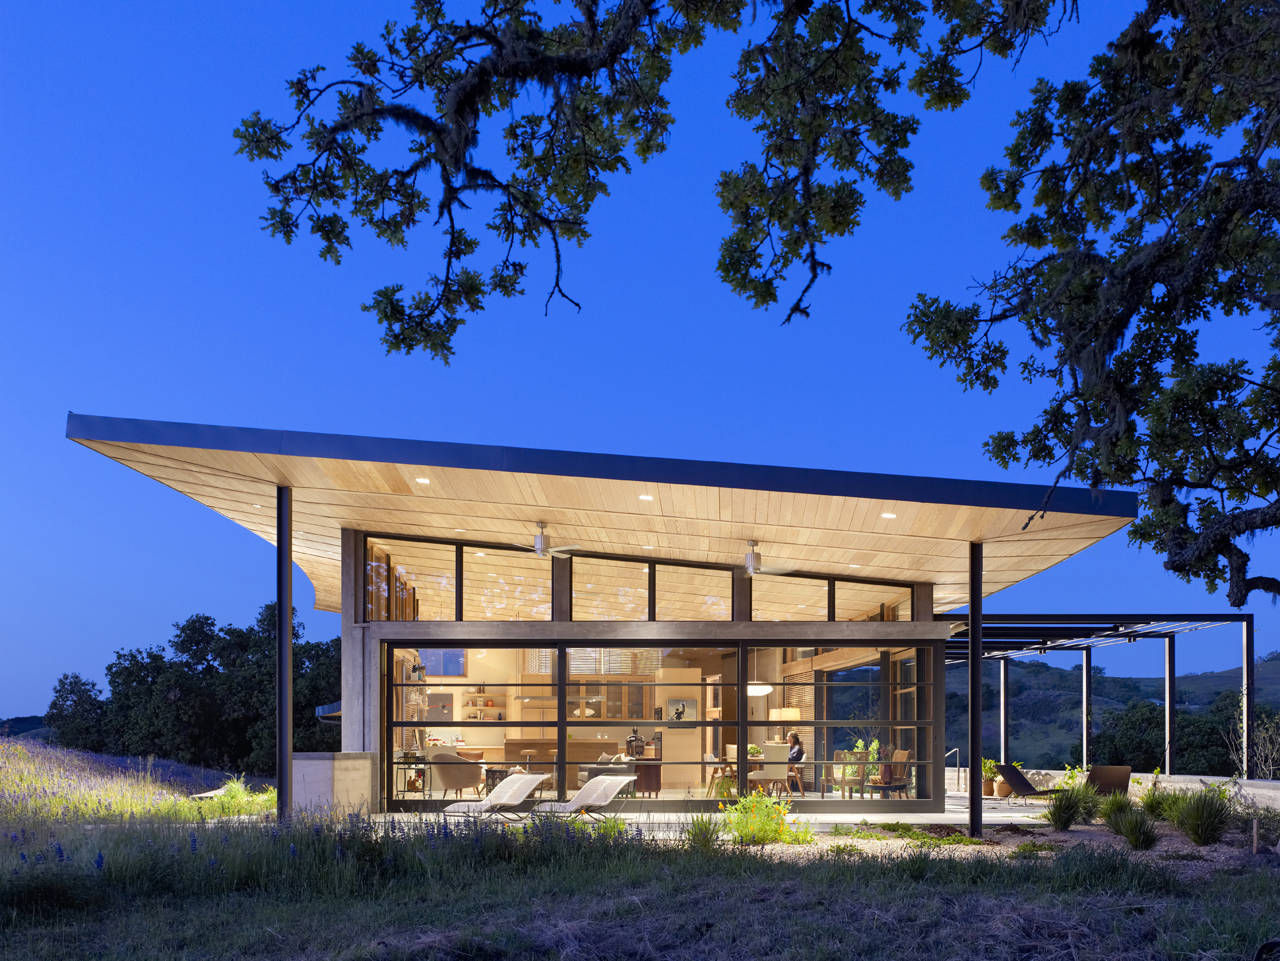 Caterpillar House in Carmel, California by Feldman Architecture